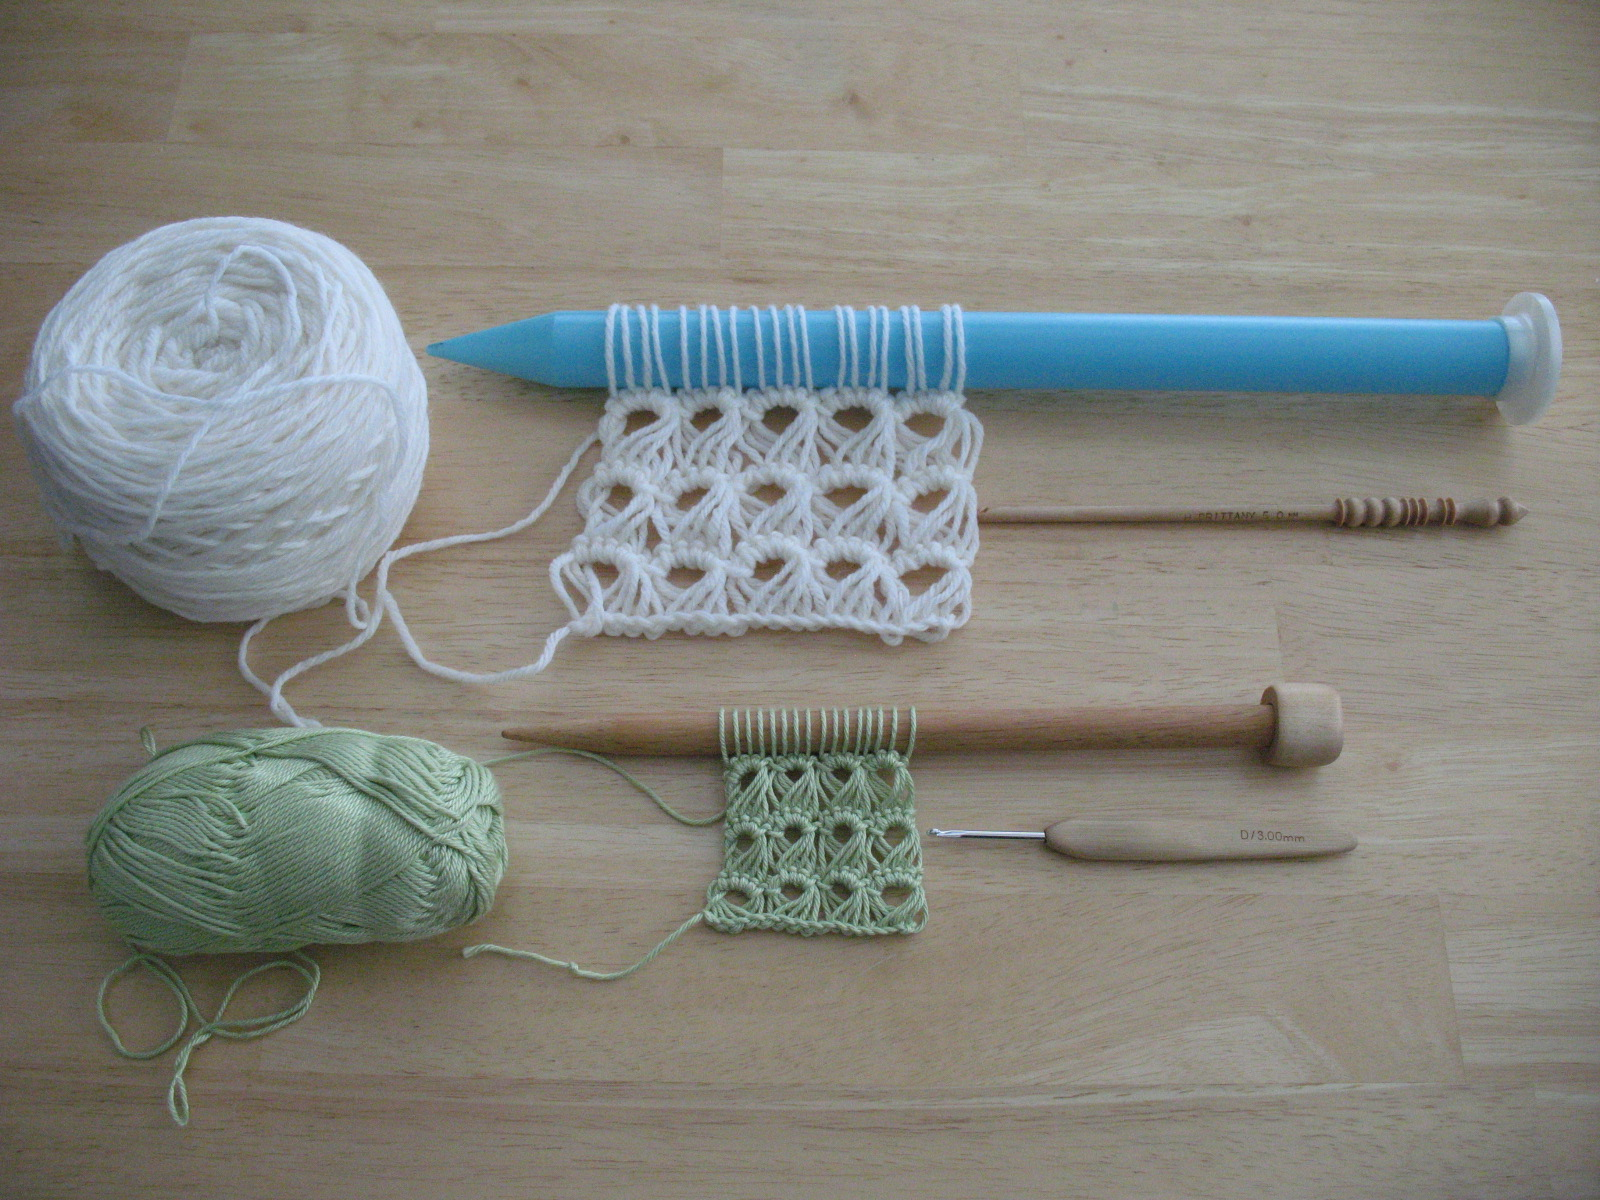 Crochet Stitches Broomstick Lace : Broomstick Lace!